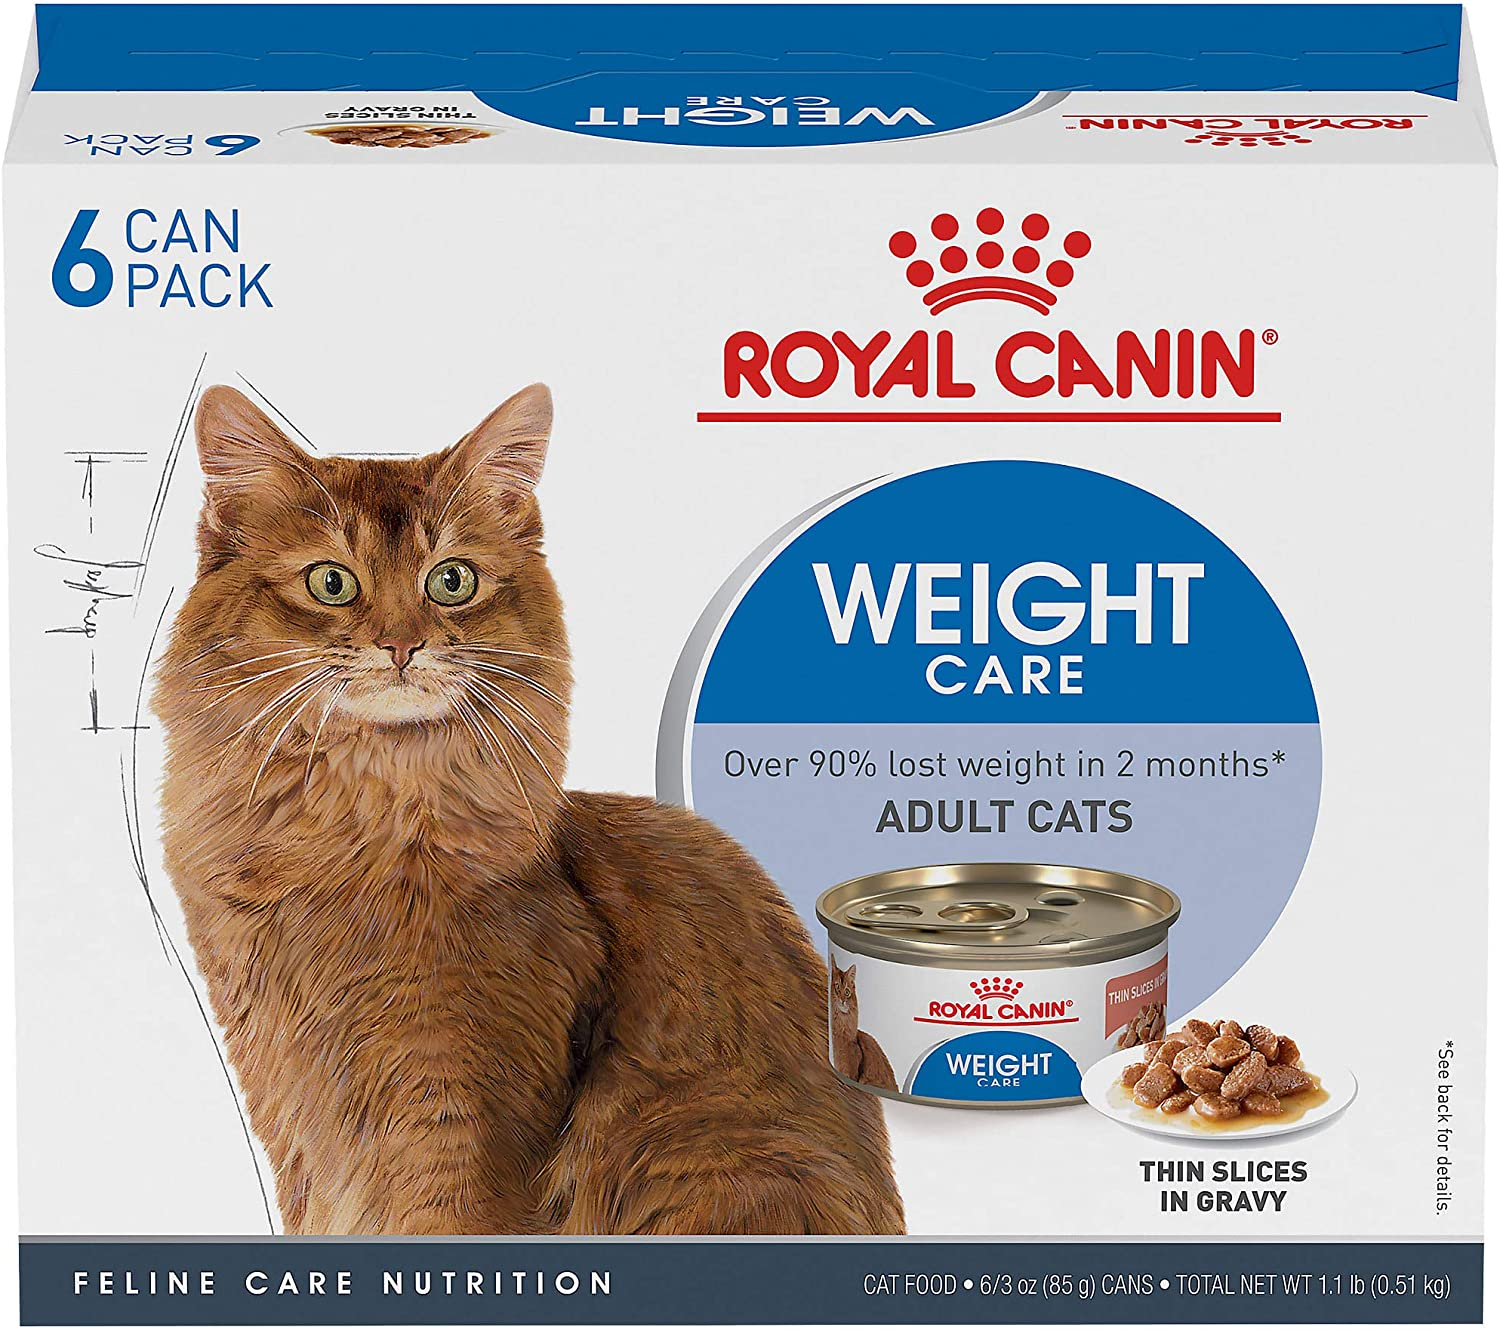 Royal Canin Feline Weight Care Thin Slices in Gravy Canned Adult Multipack Wet Cat Food, 3 oz., Count of 6, 6 CT